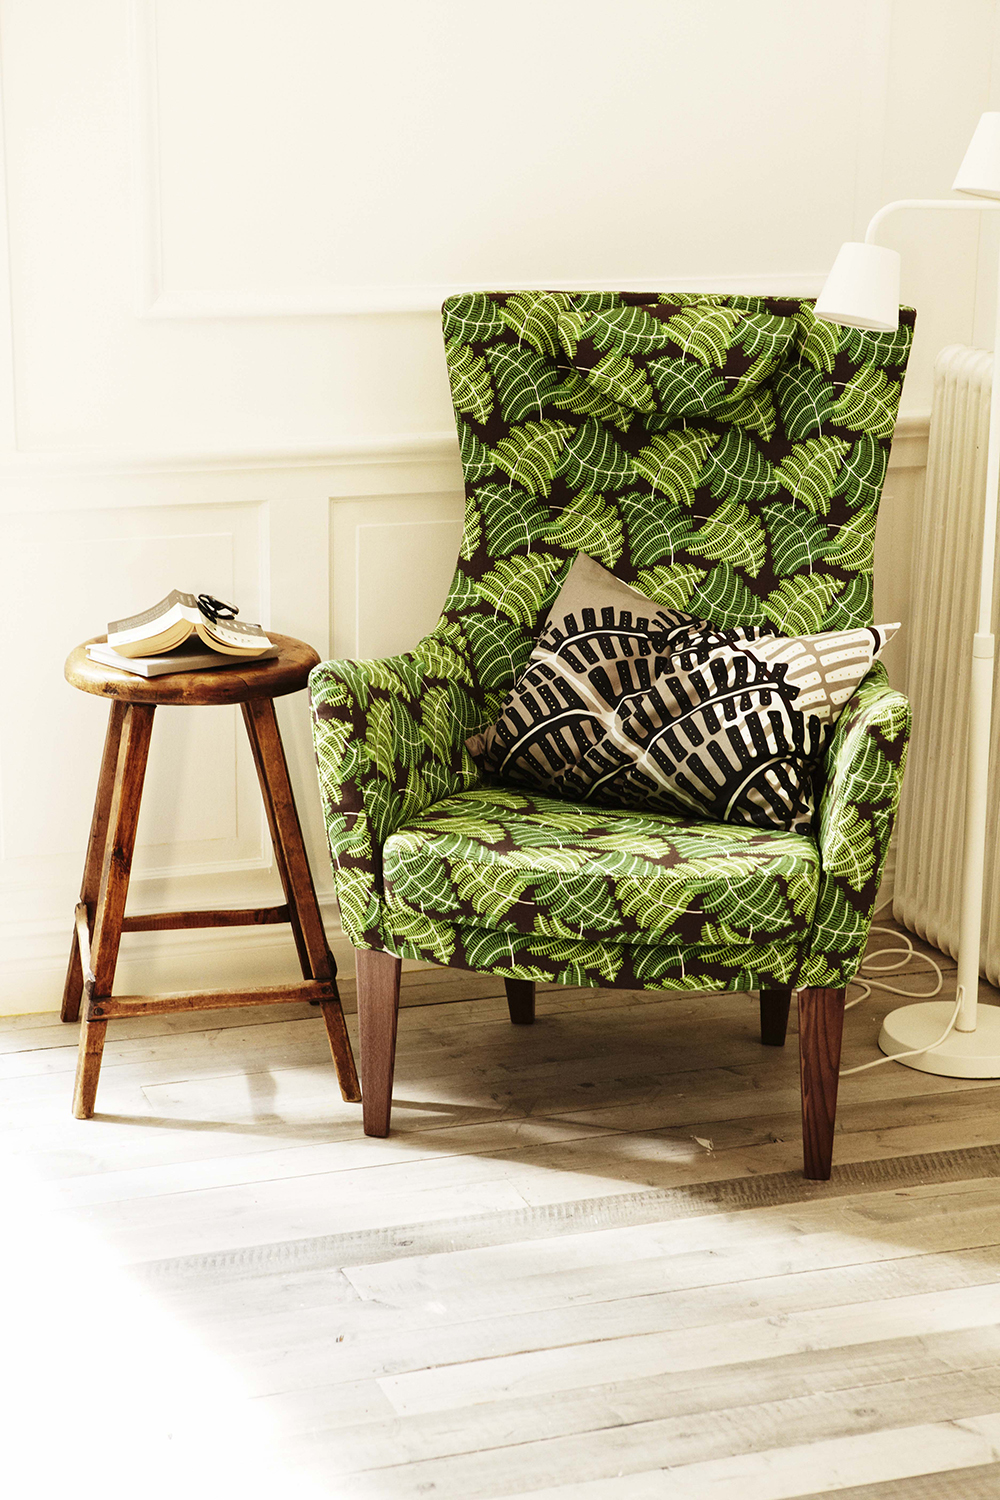 Fauteuil Wingback Ikea Favorites From Ikea's 2014 Catalog | Driven By Decor